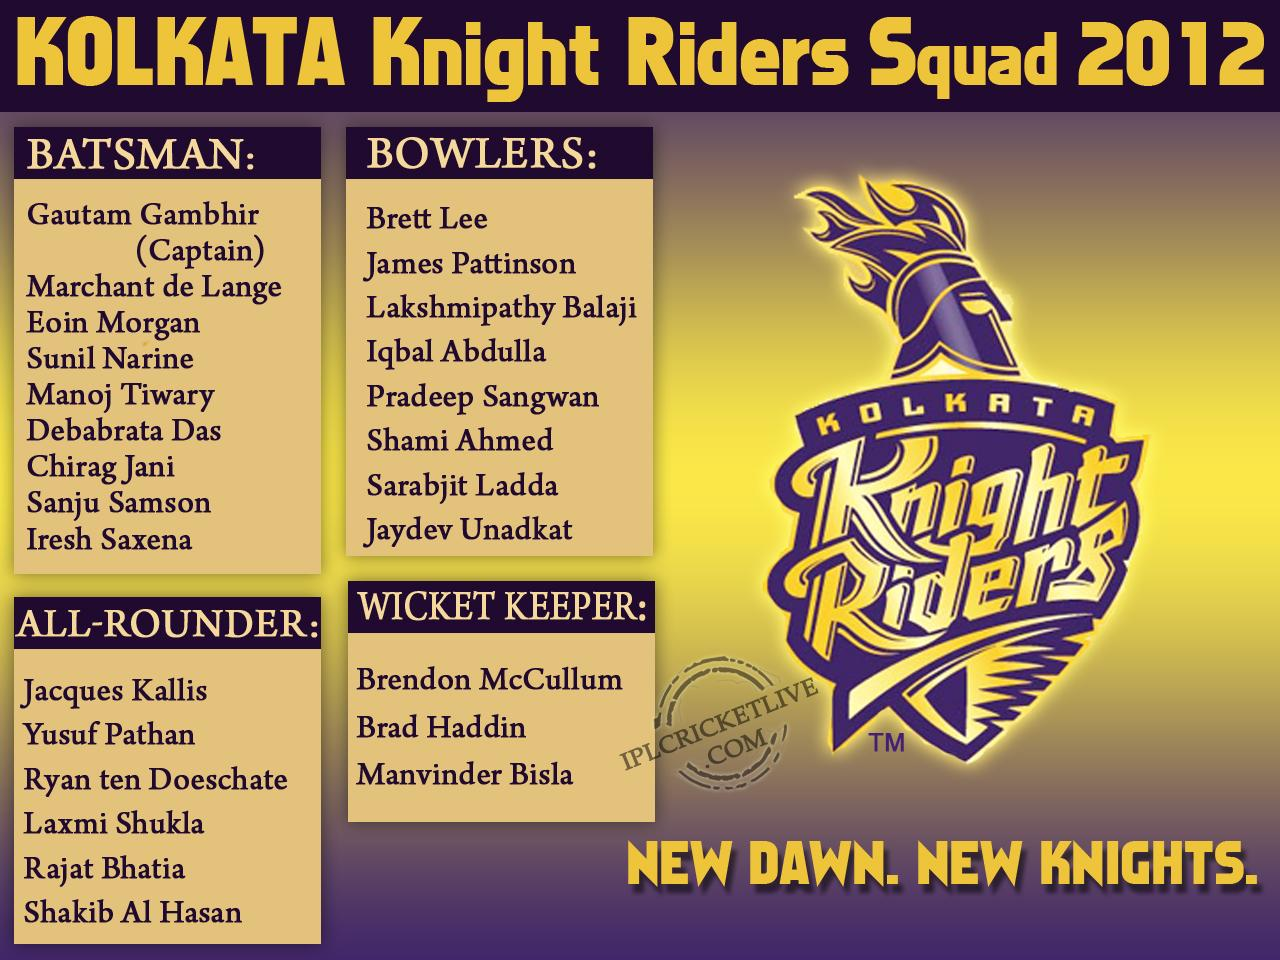 Check out the players playing for Kolkata Knight Riders in IPL 2012.